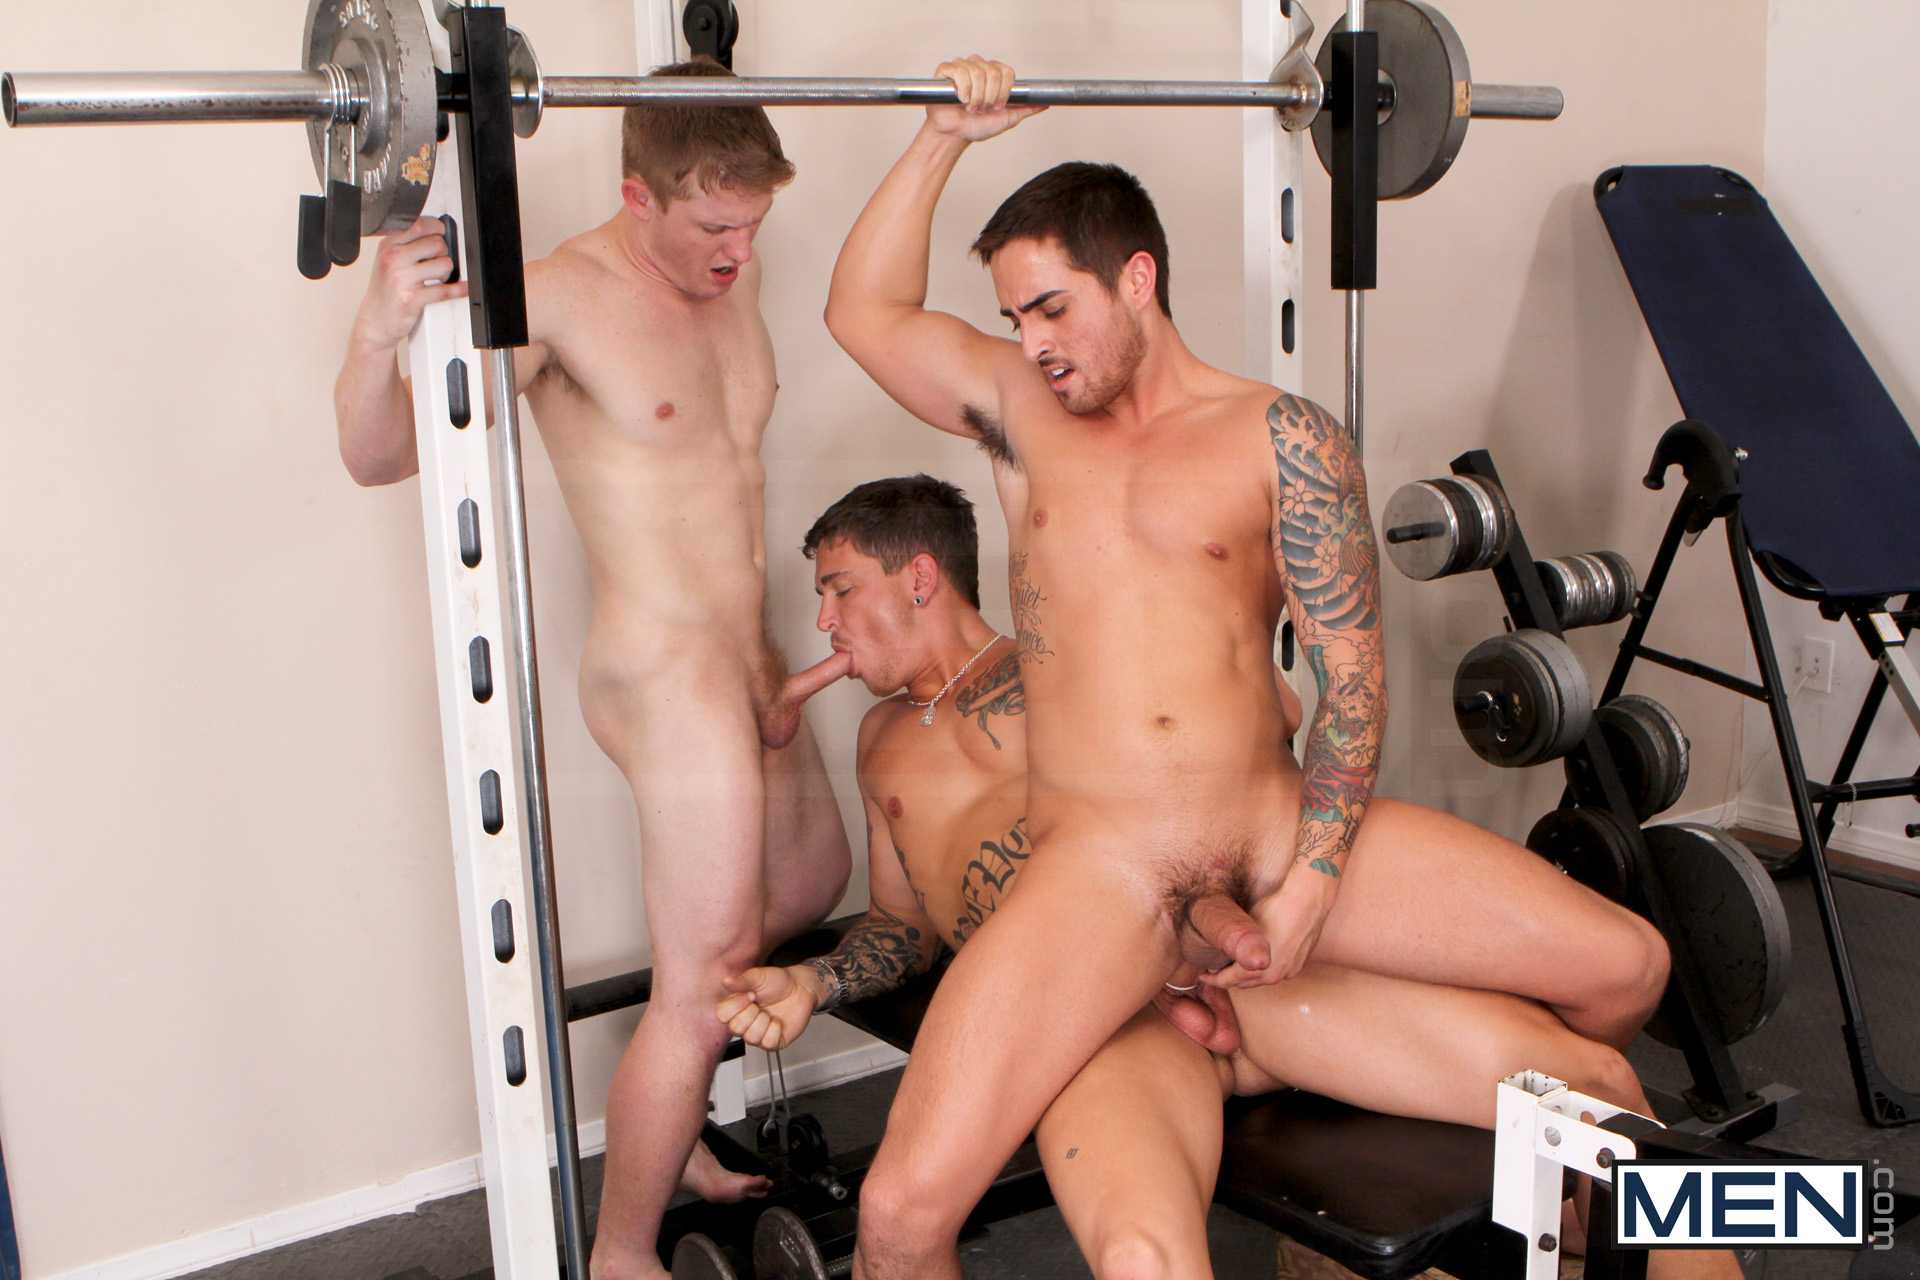 Gym Xxx The Guy To Man Into